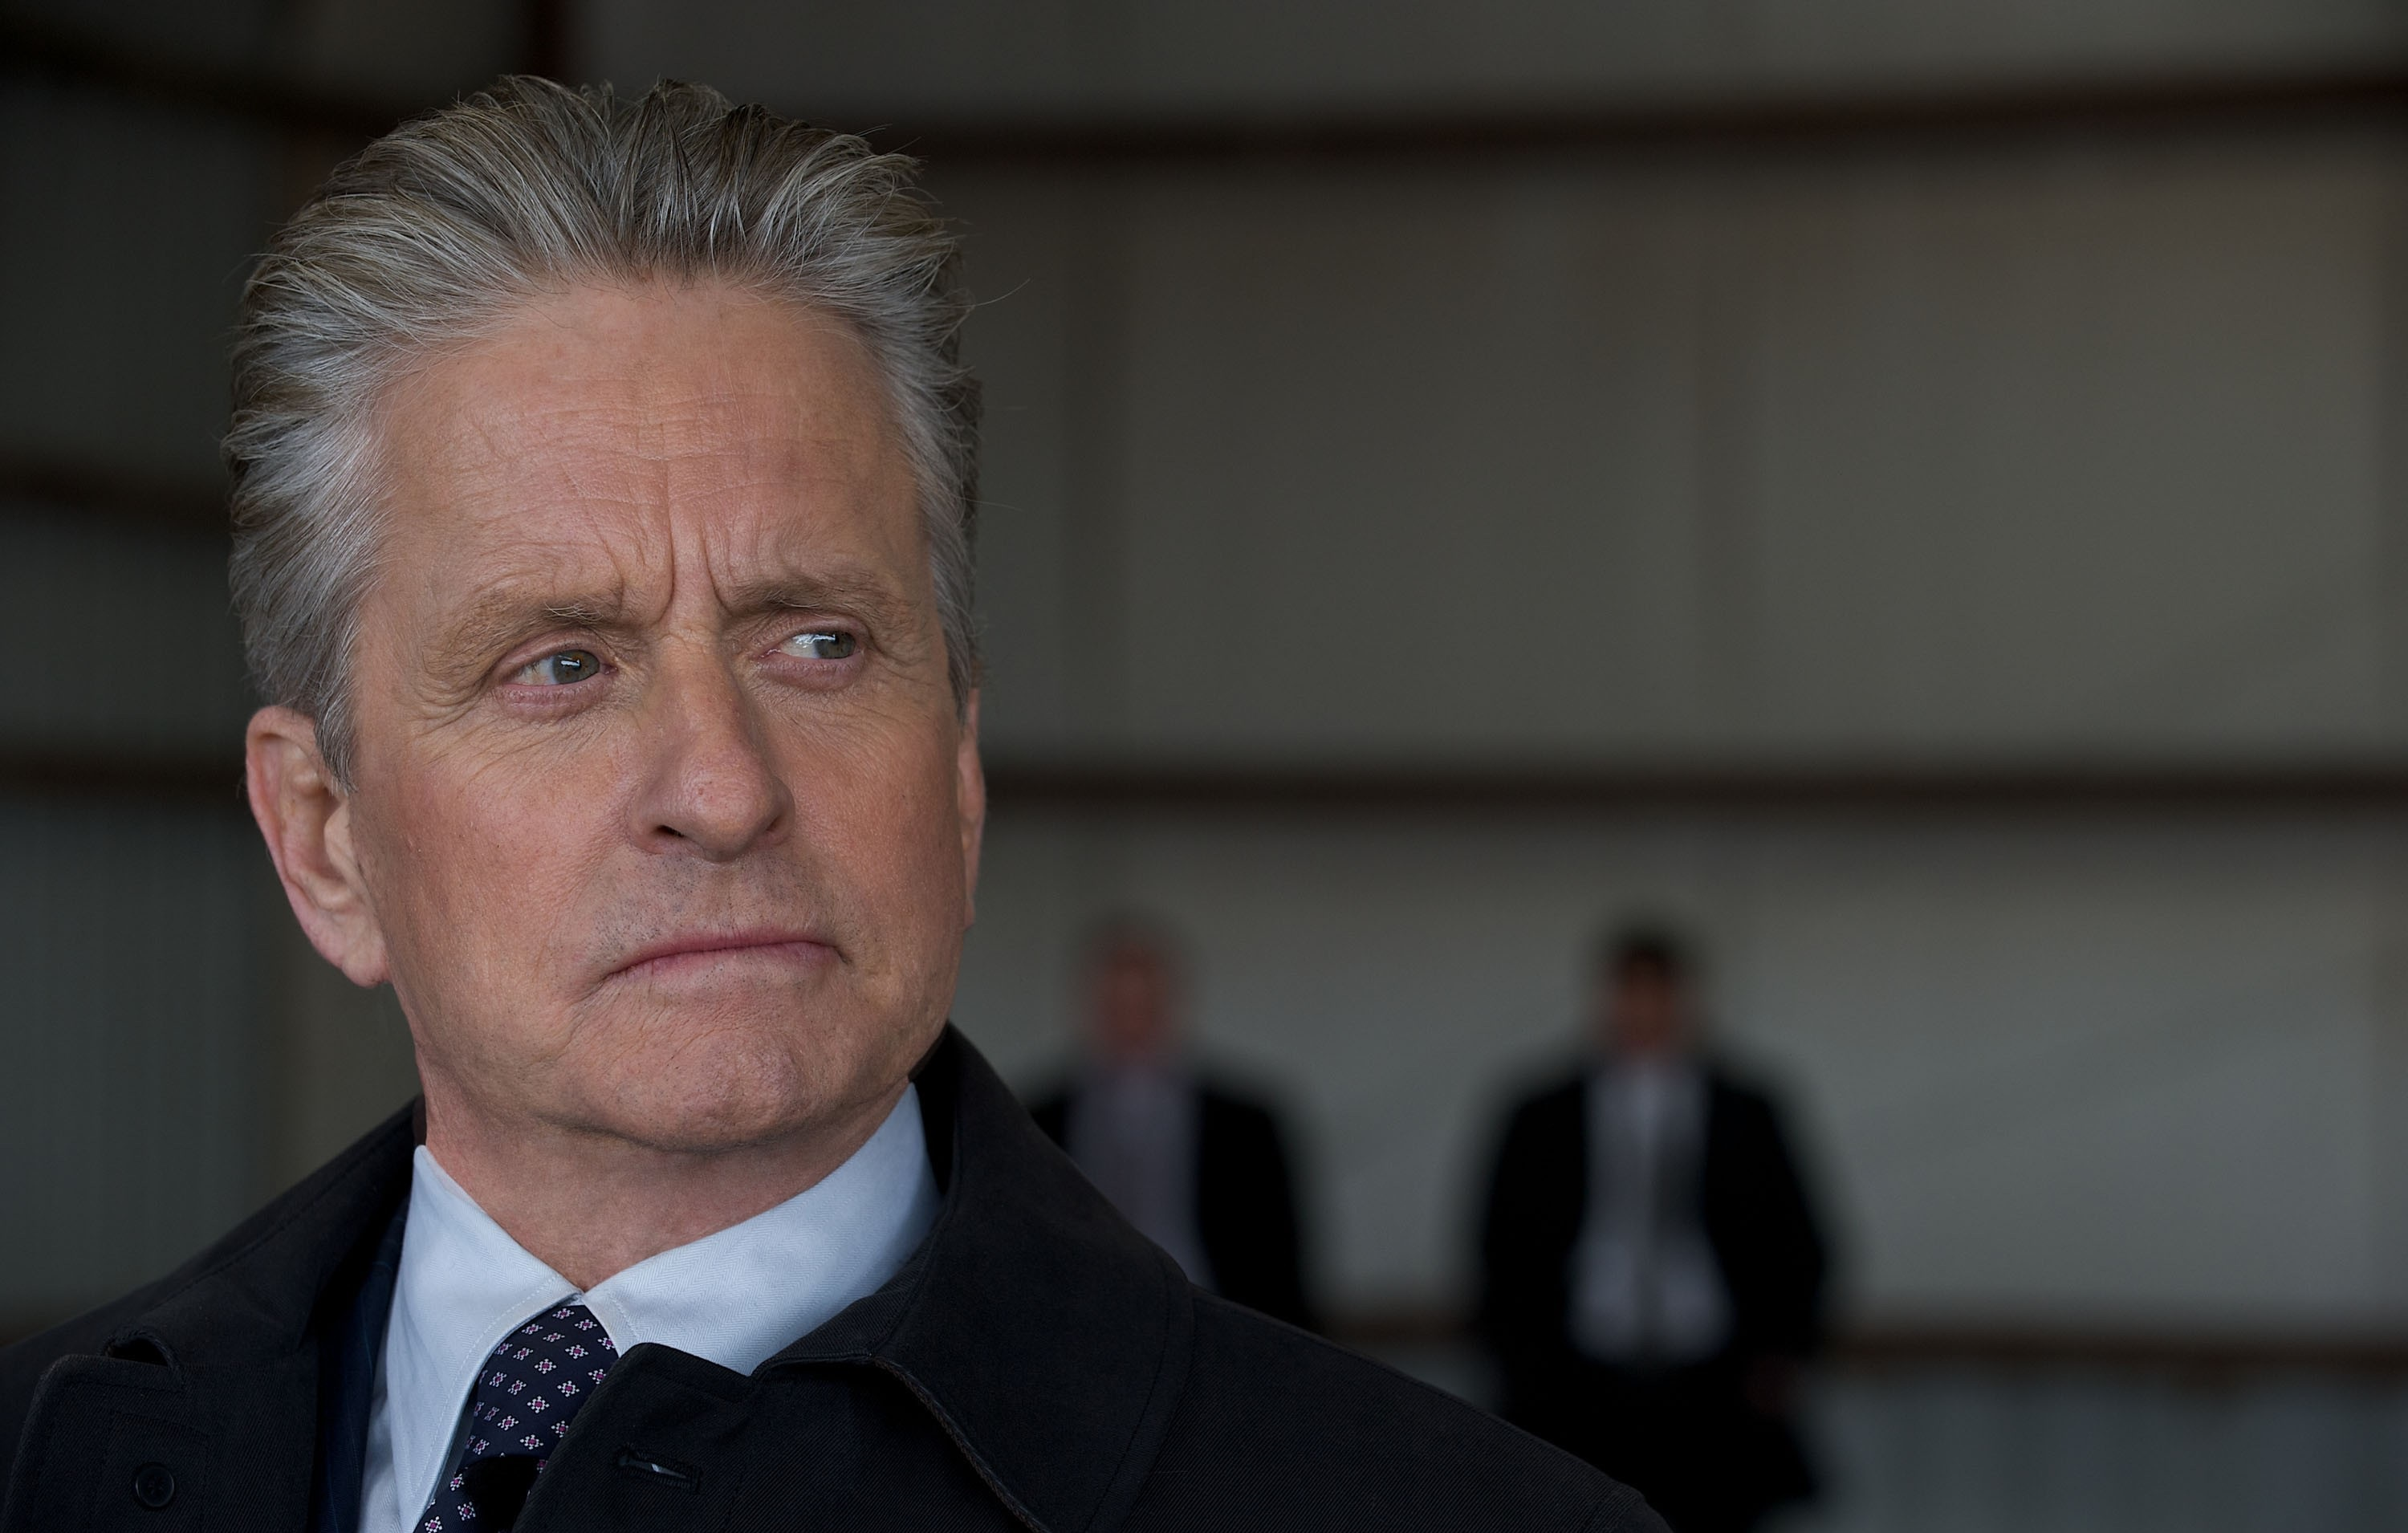 michael douglas actor hd wallpaper 58502